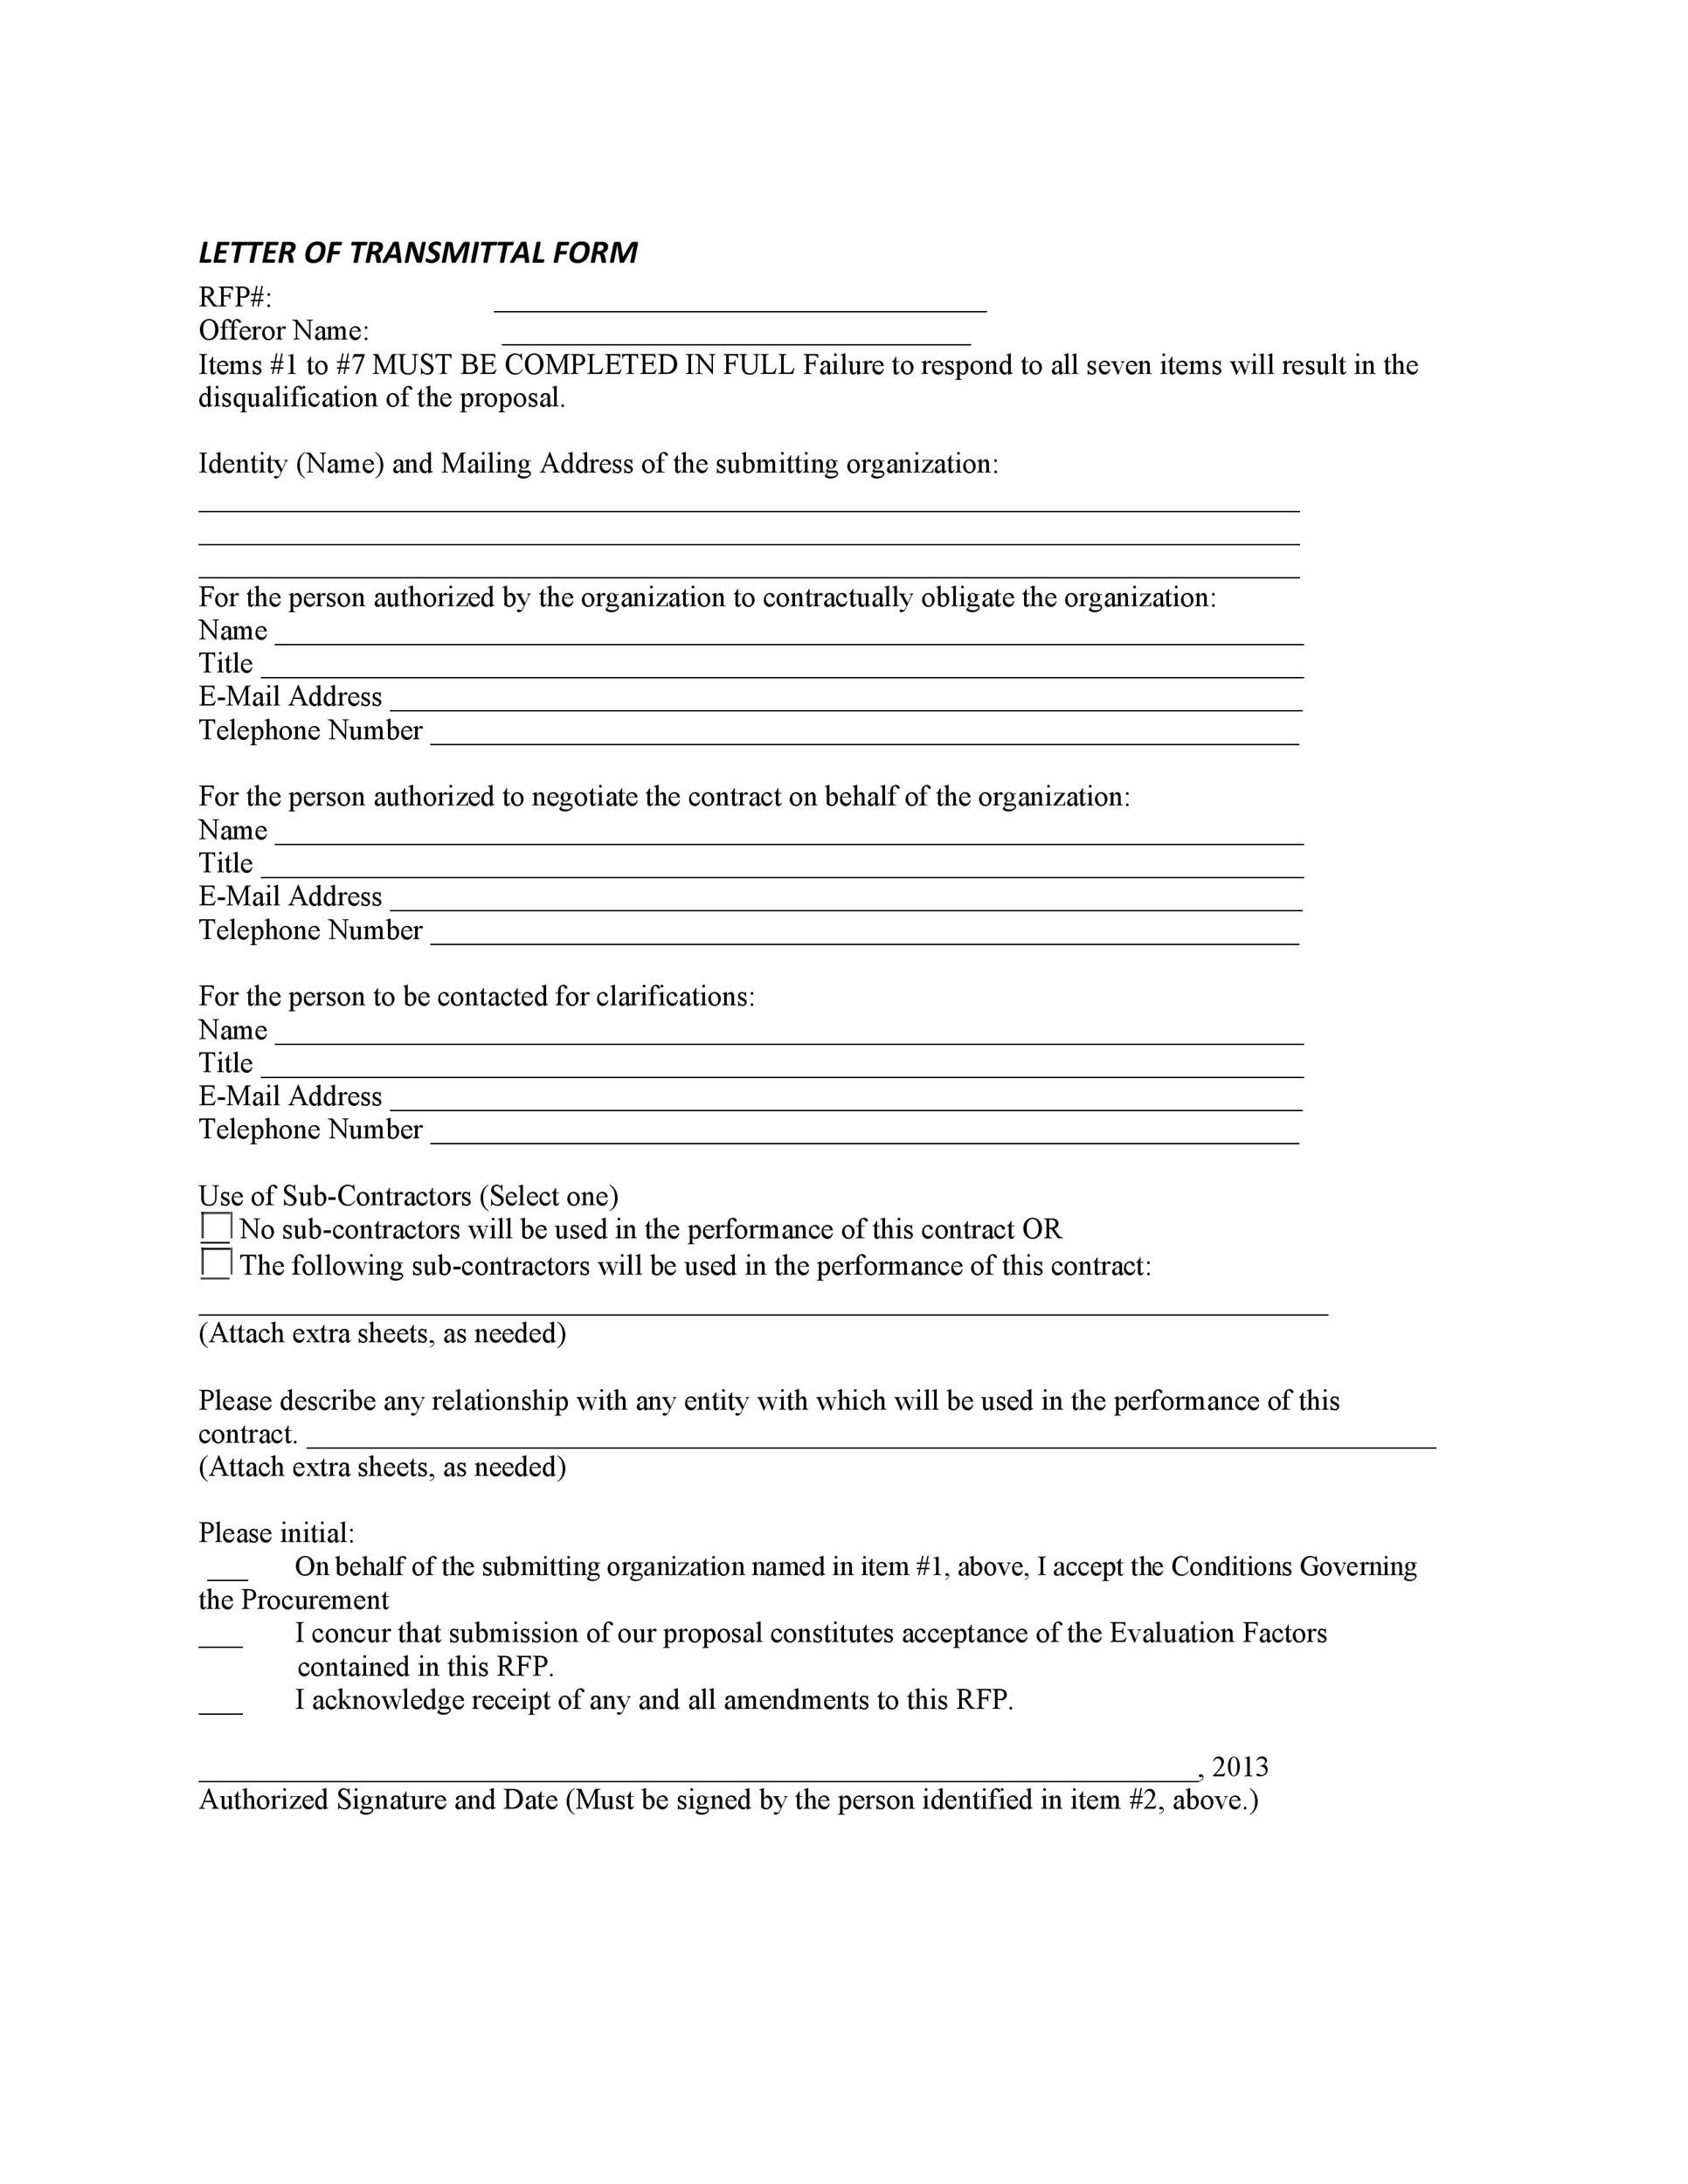 Free letter of transmittal template 33